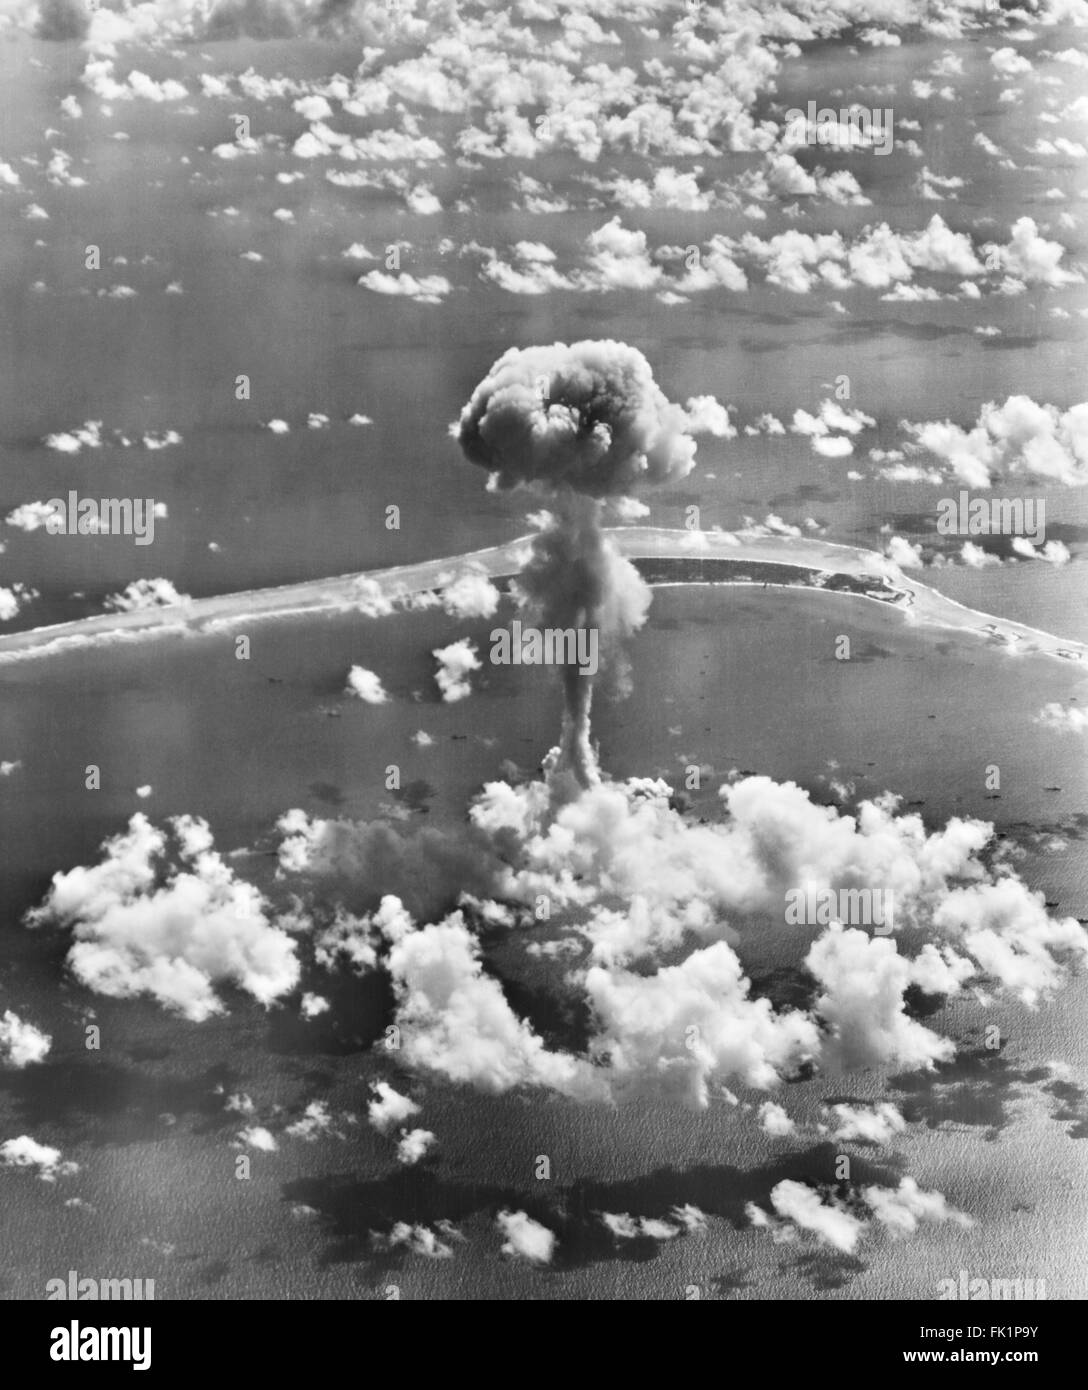 Mushroom cloud from Operation Crossroads nuclear weapons test at Bikini Atoll, Marshall Islands, Pacific Ocean in - Stock Image